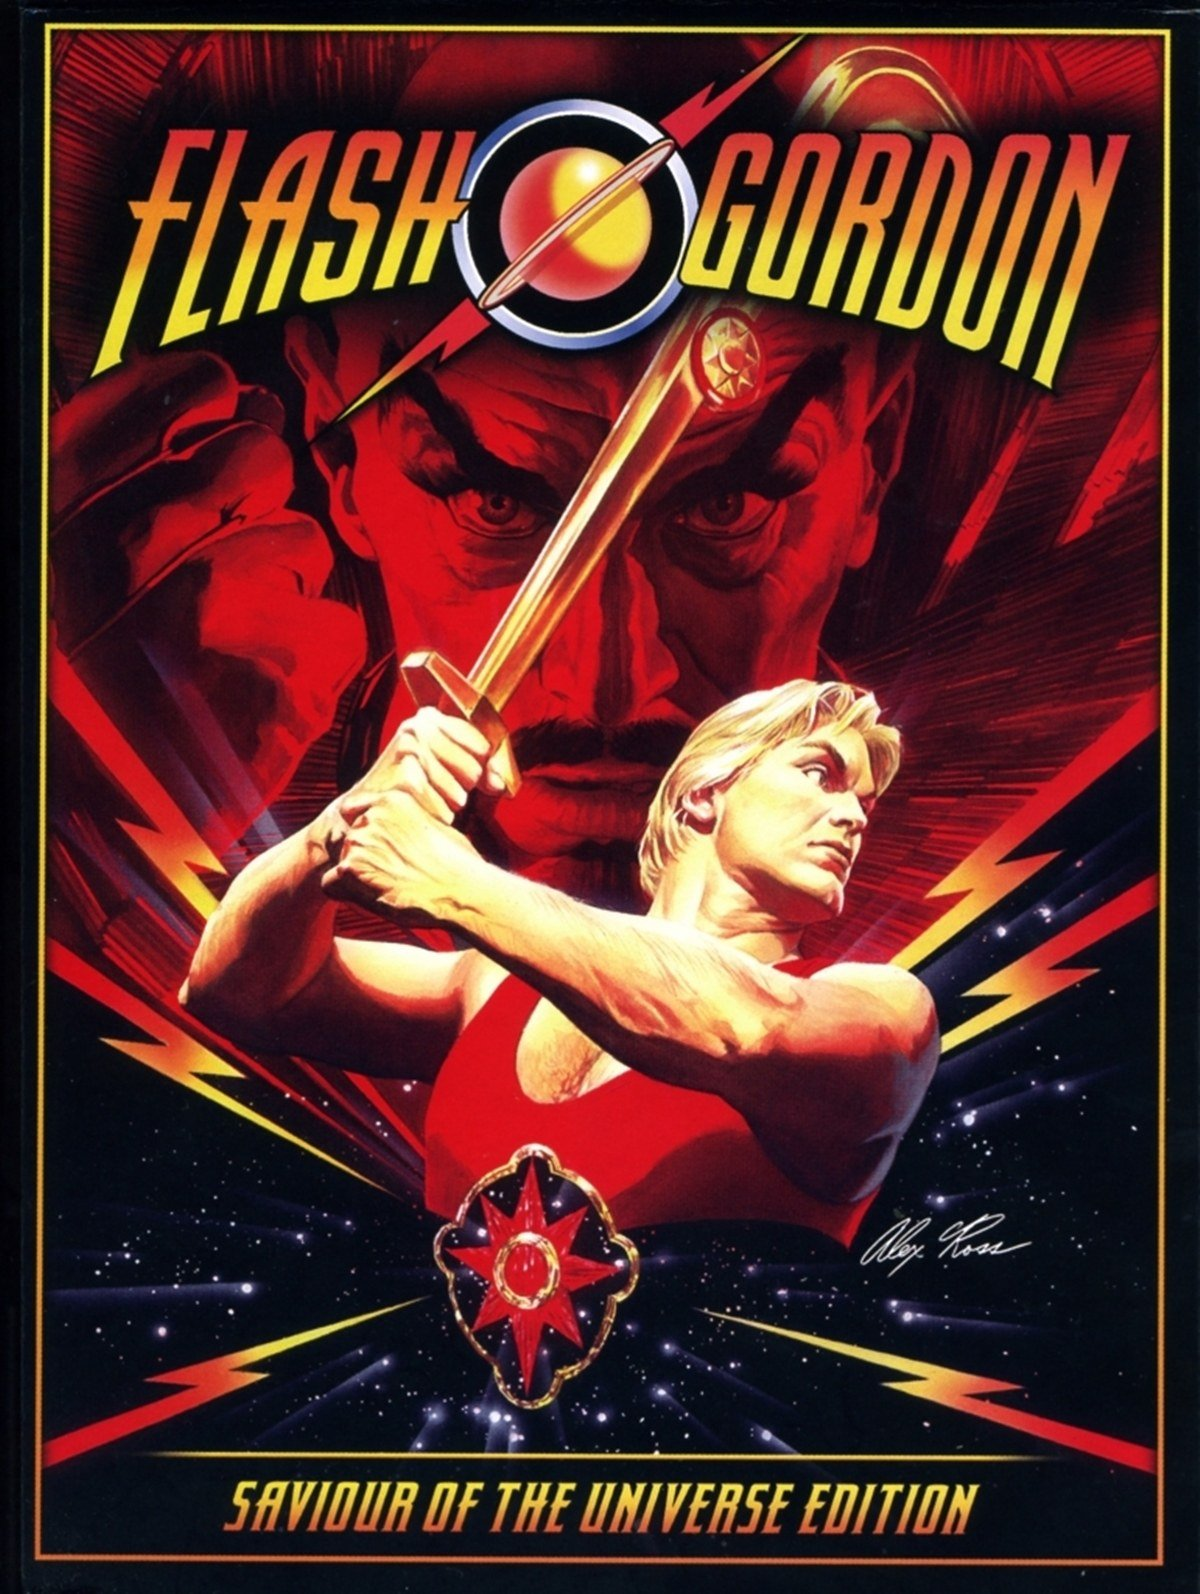 8 9 23 Things You Probably Didn't Know About Flash Gordon